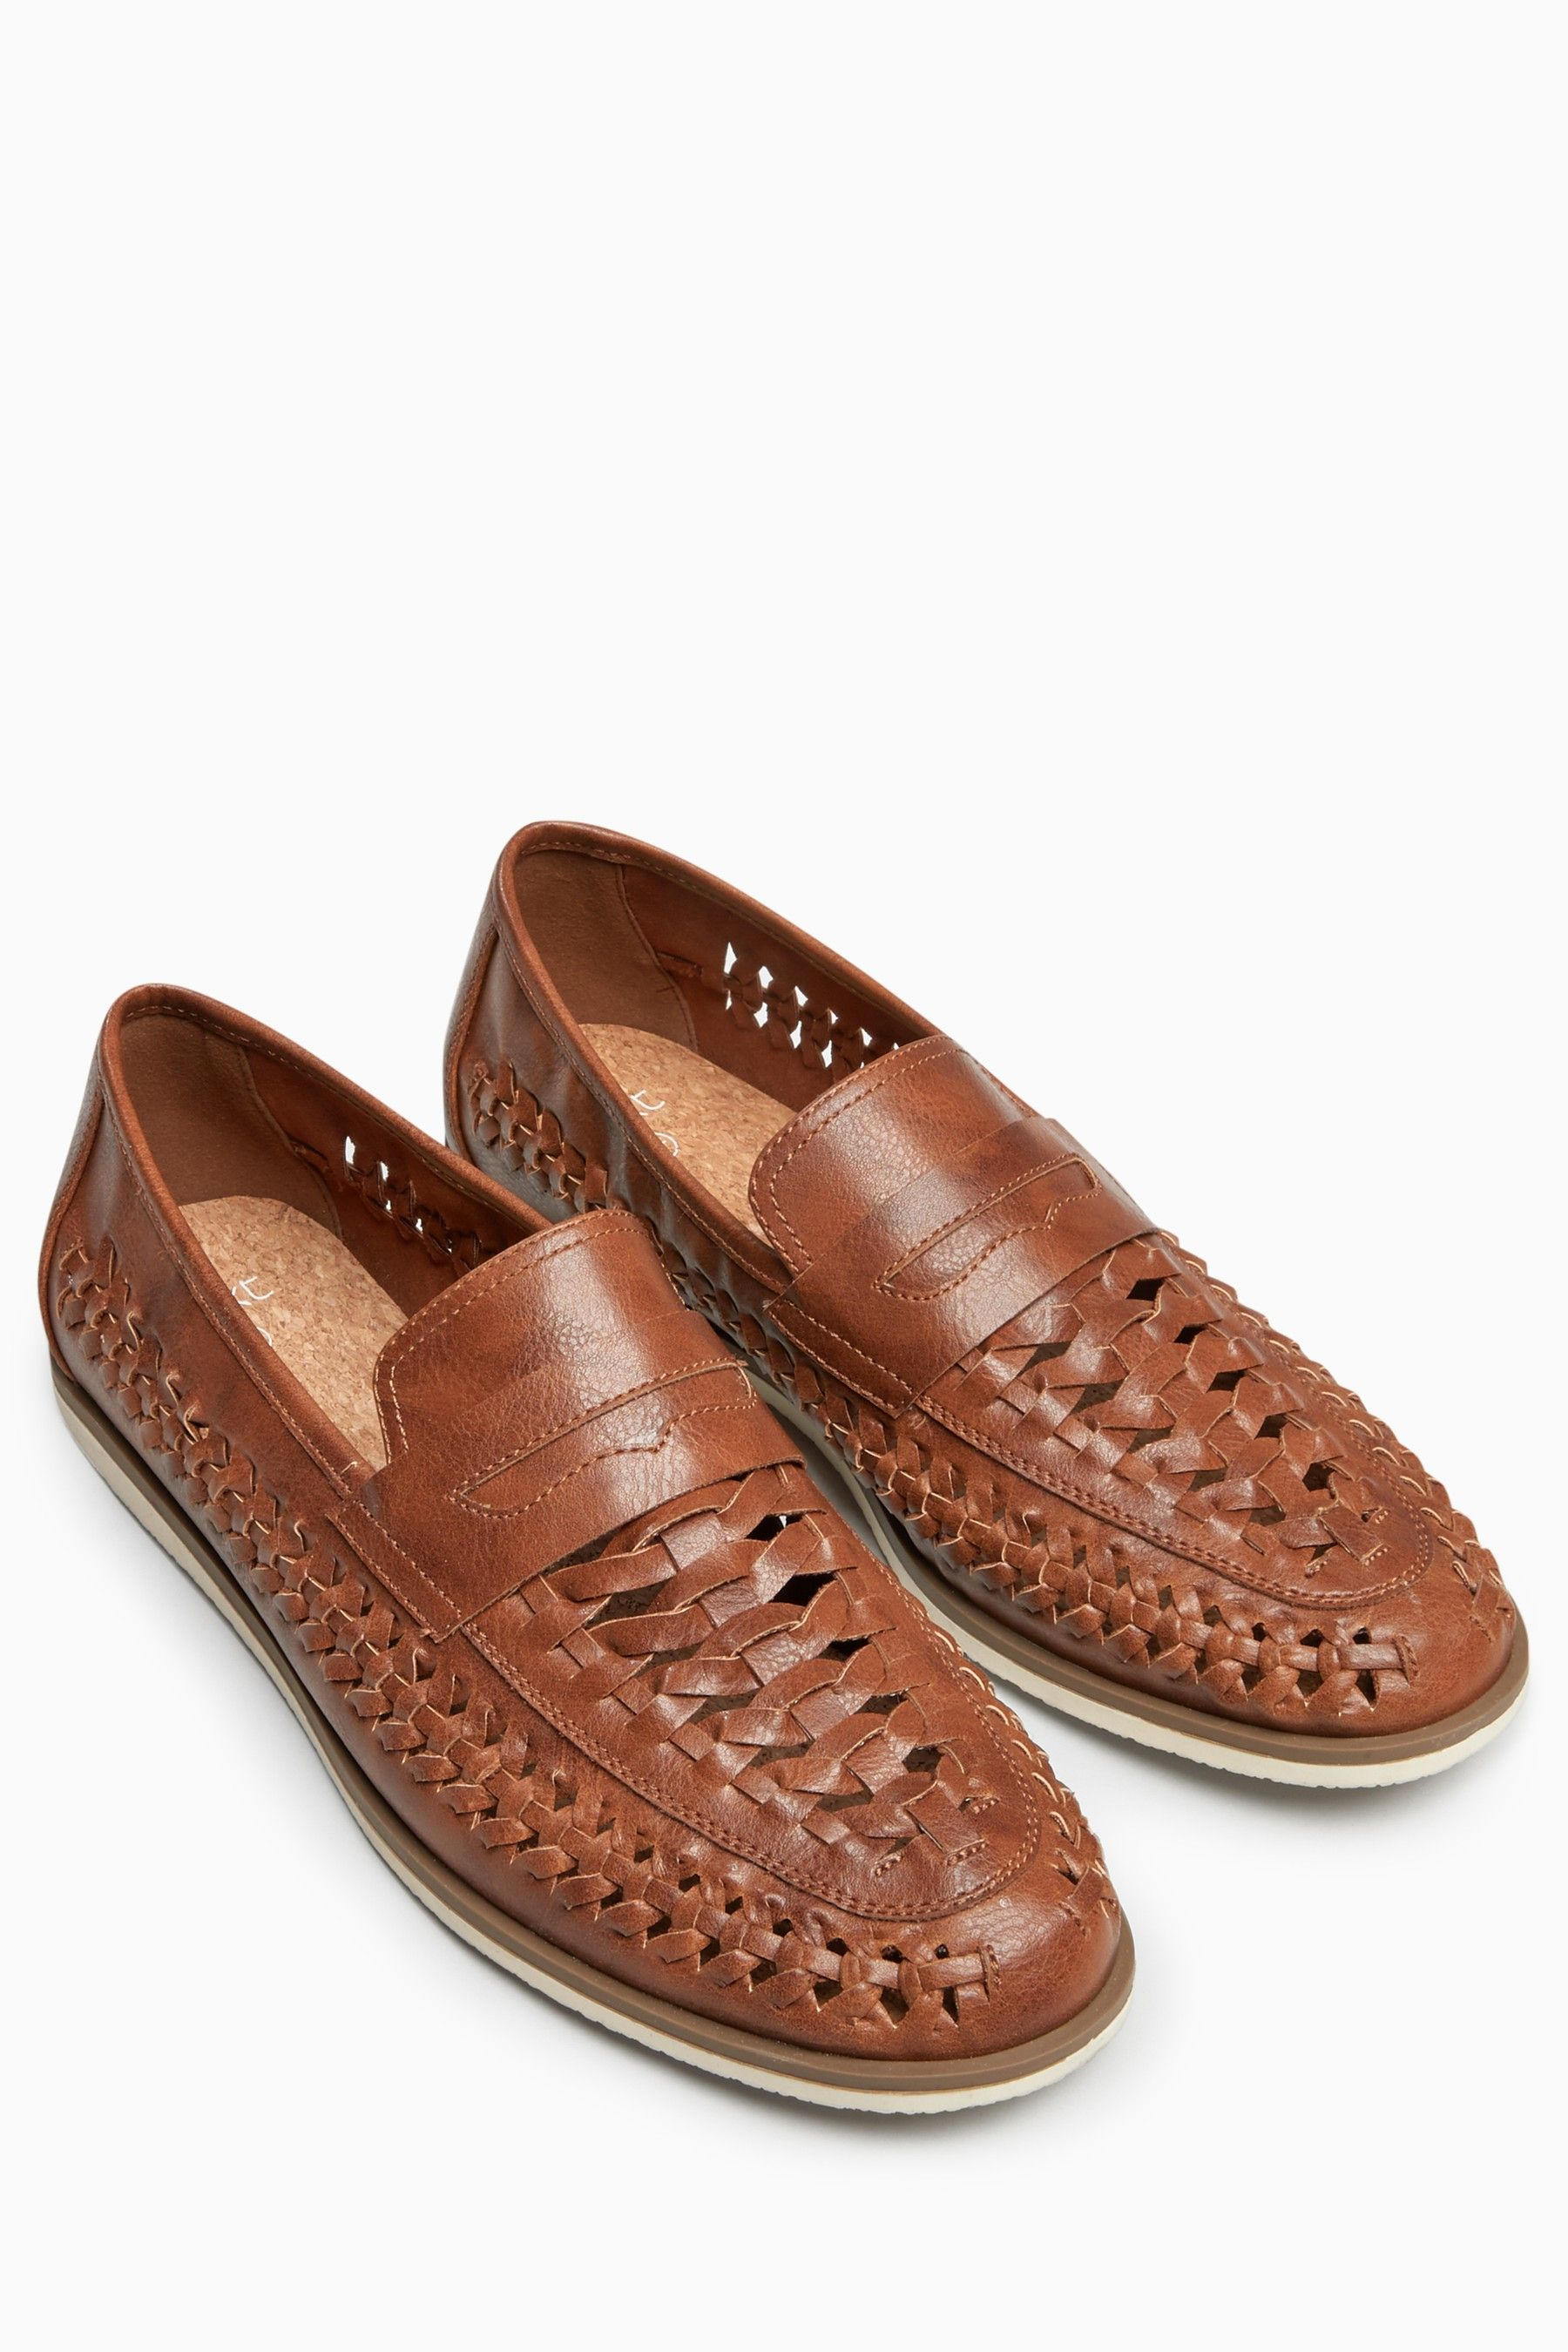 9512840e9ced0 Mens Next Tan Weave Loafer - Brown | real shoes in 2019 | Shoes ...